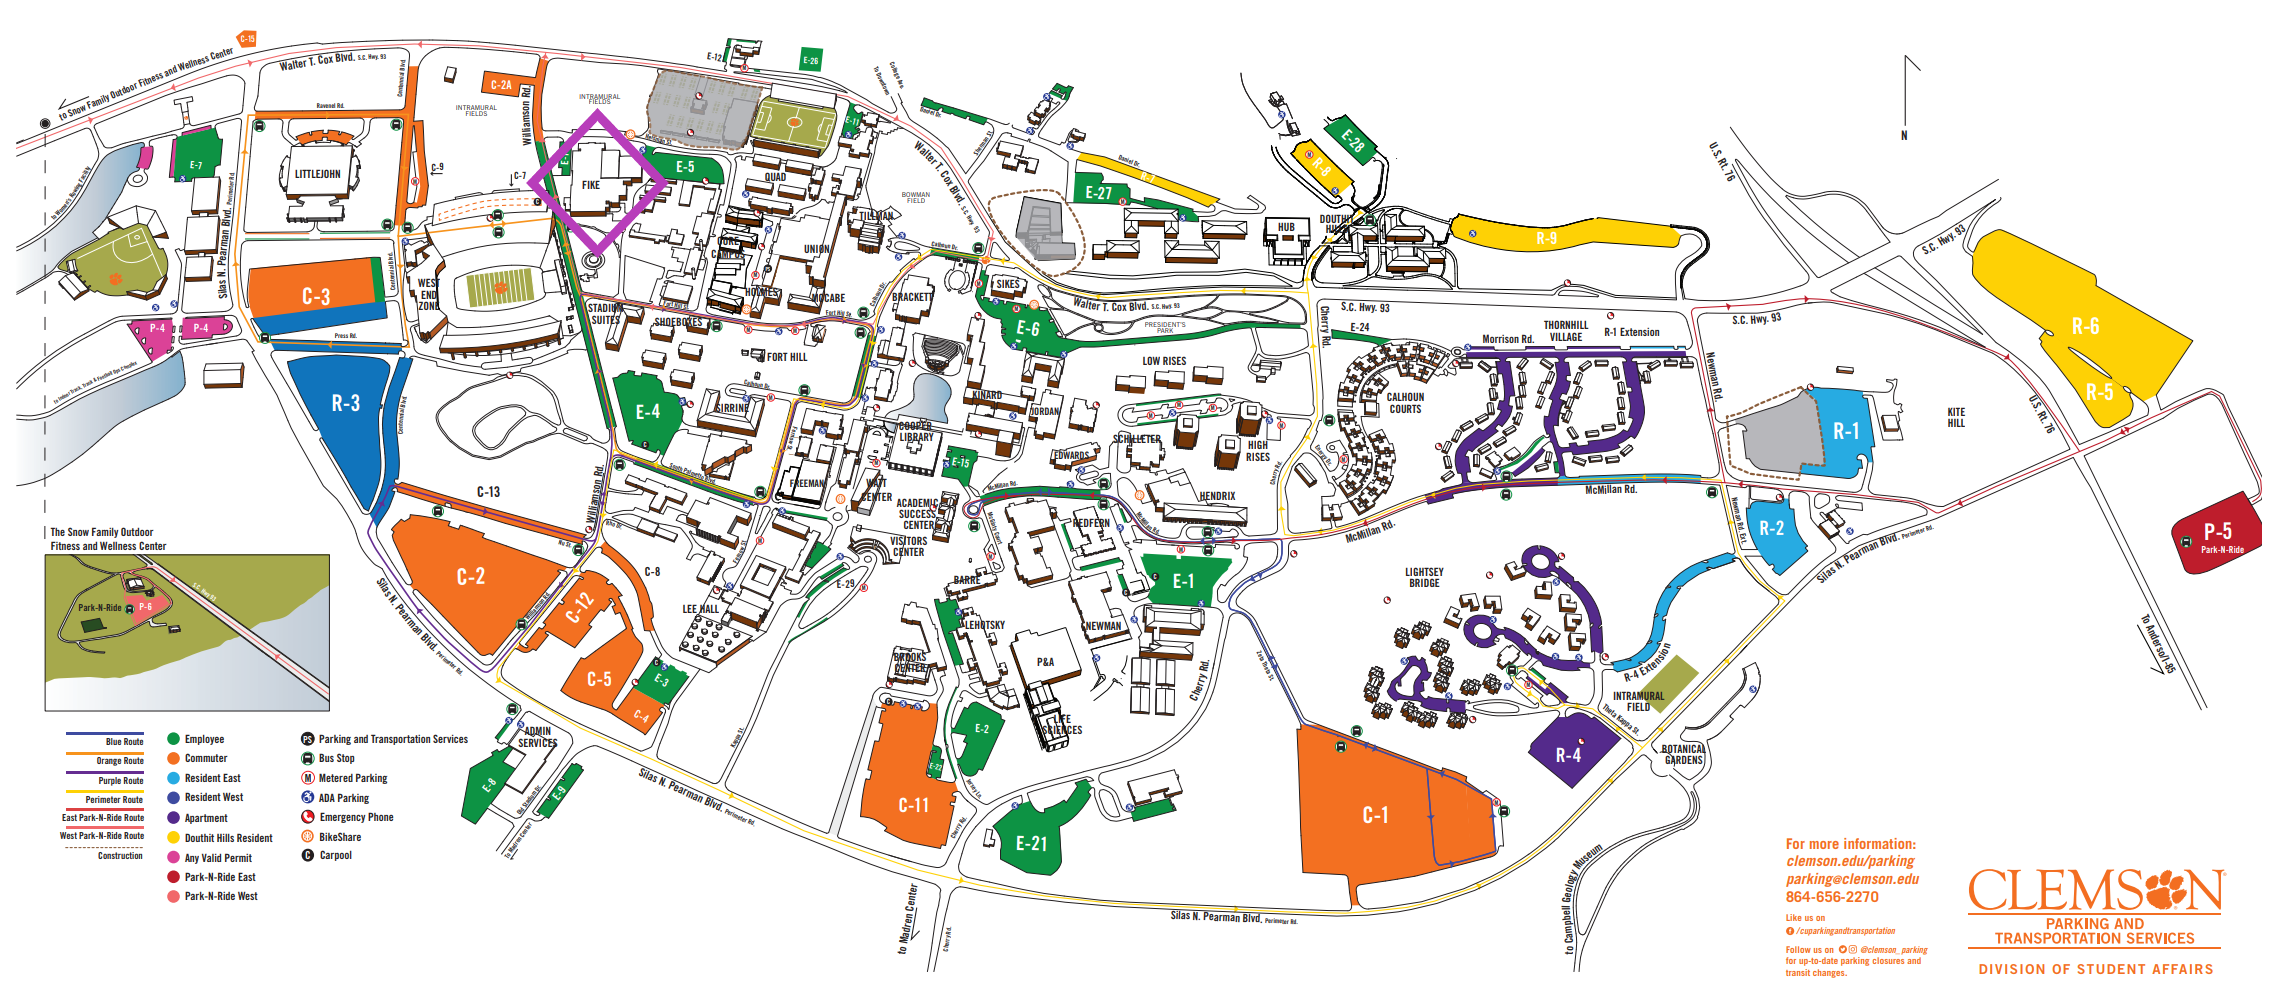 furman university campus map Furman At Clemson Tailgate Furman University furman university campus map